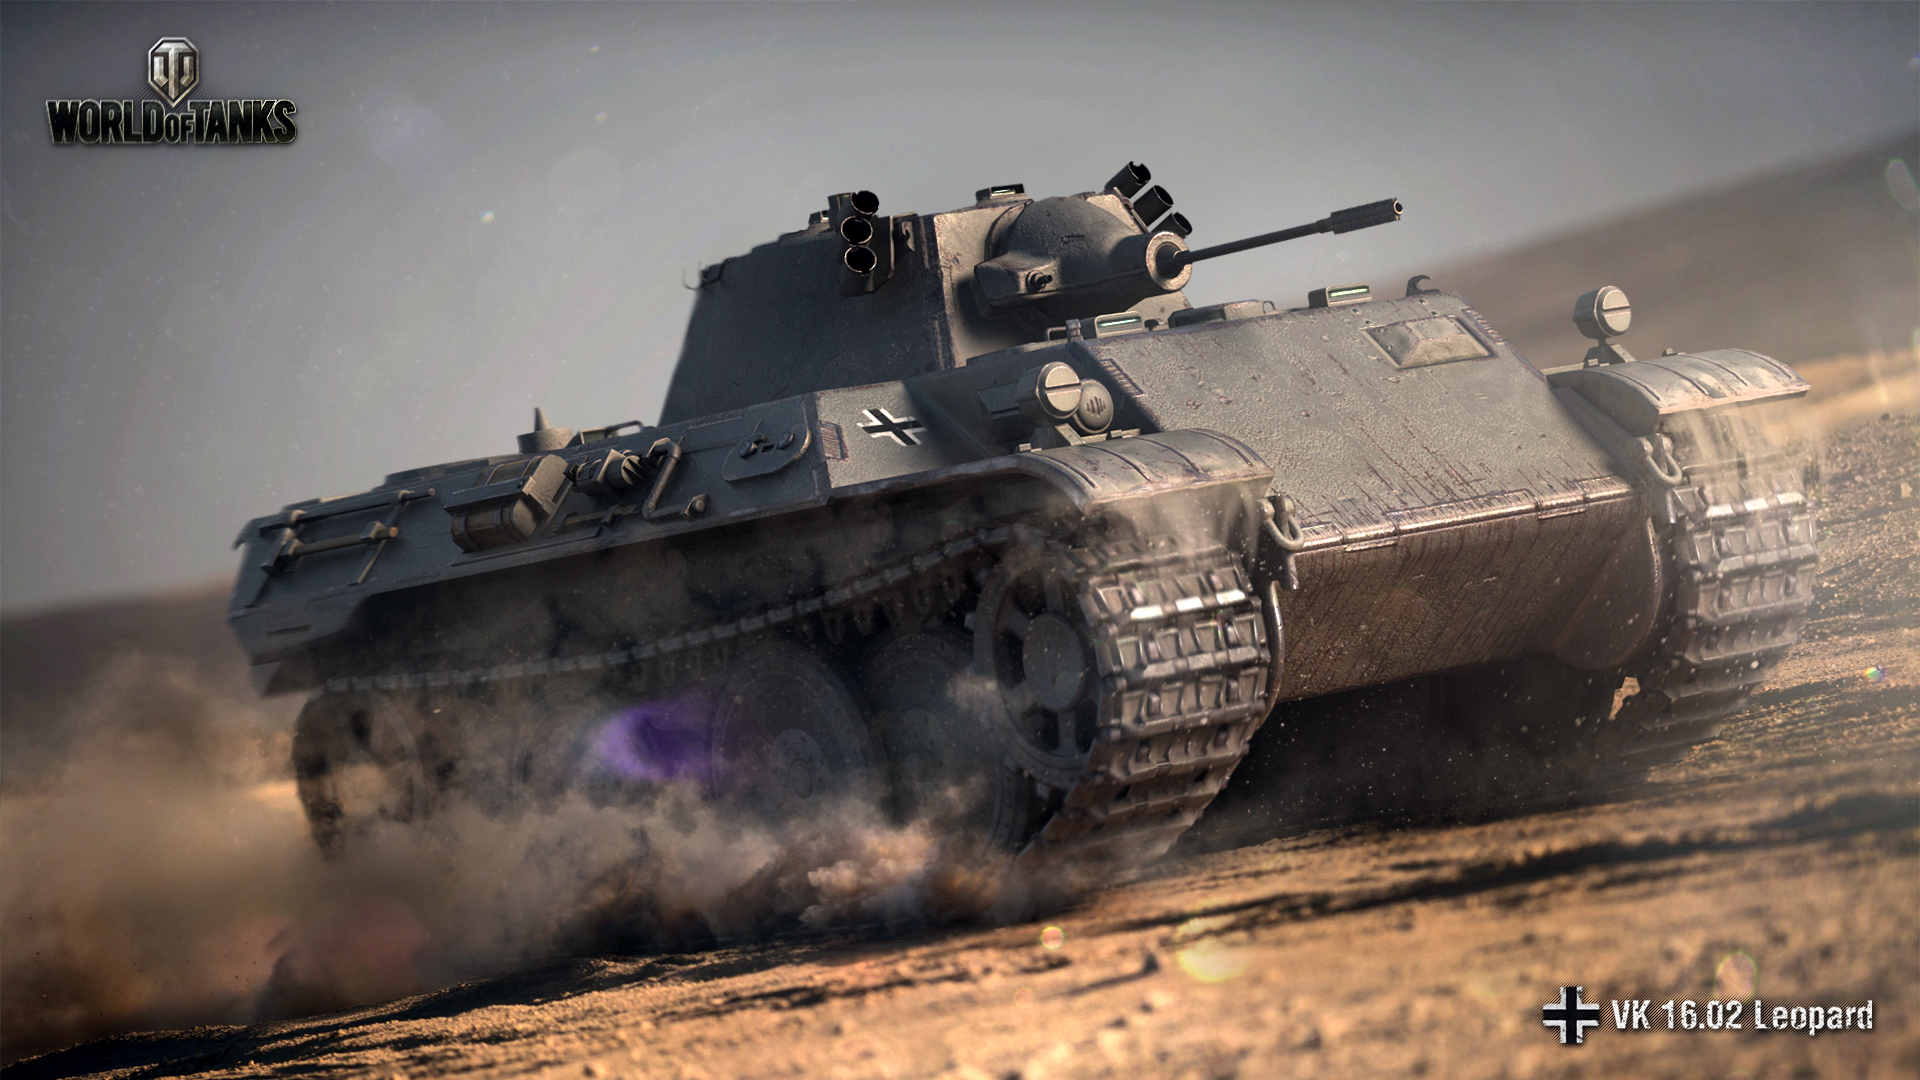 Fondos De Pantalla 1920x1080 World Of Tanks Tanque Vk 1602